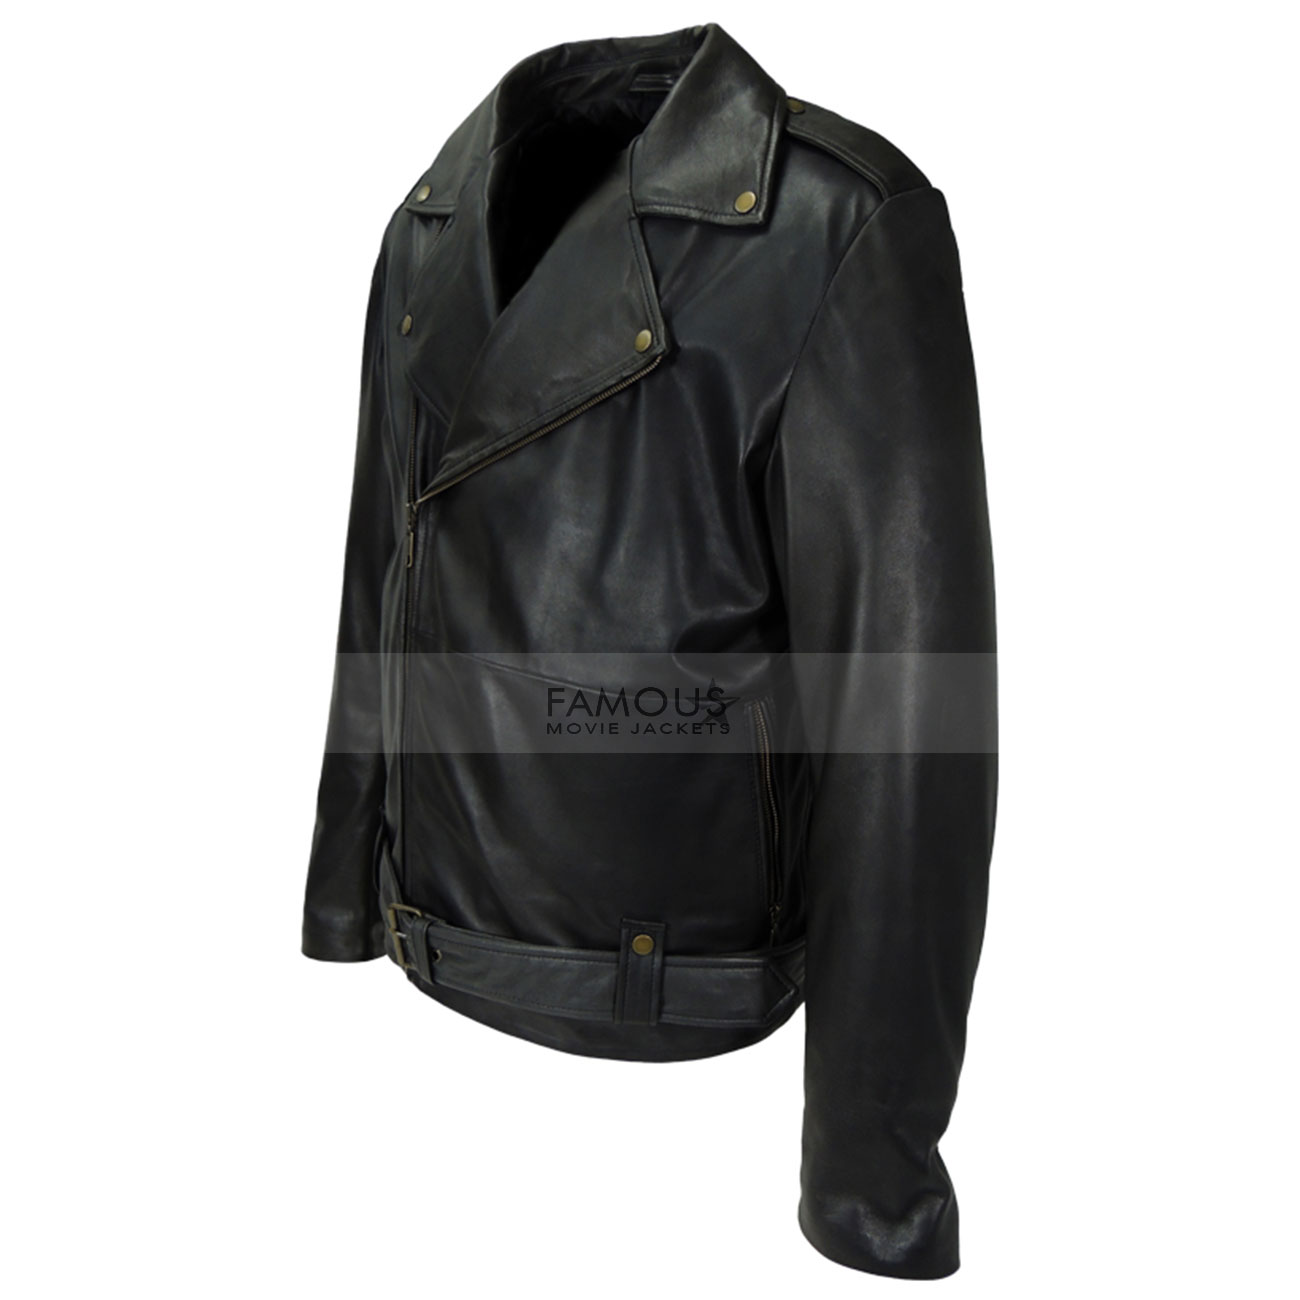 Cry-Baby Johnny Depp Motorcycle Leather Jacket